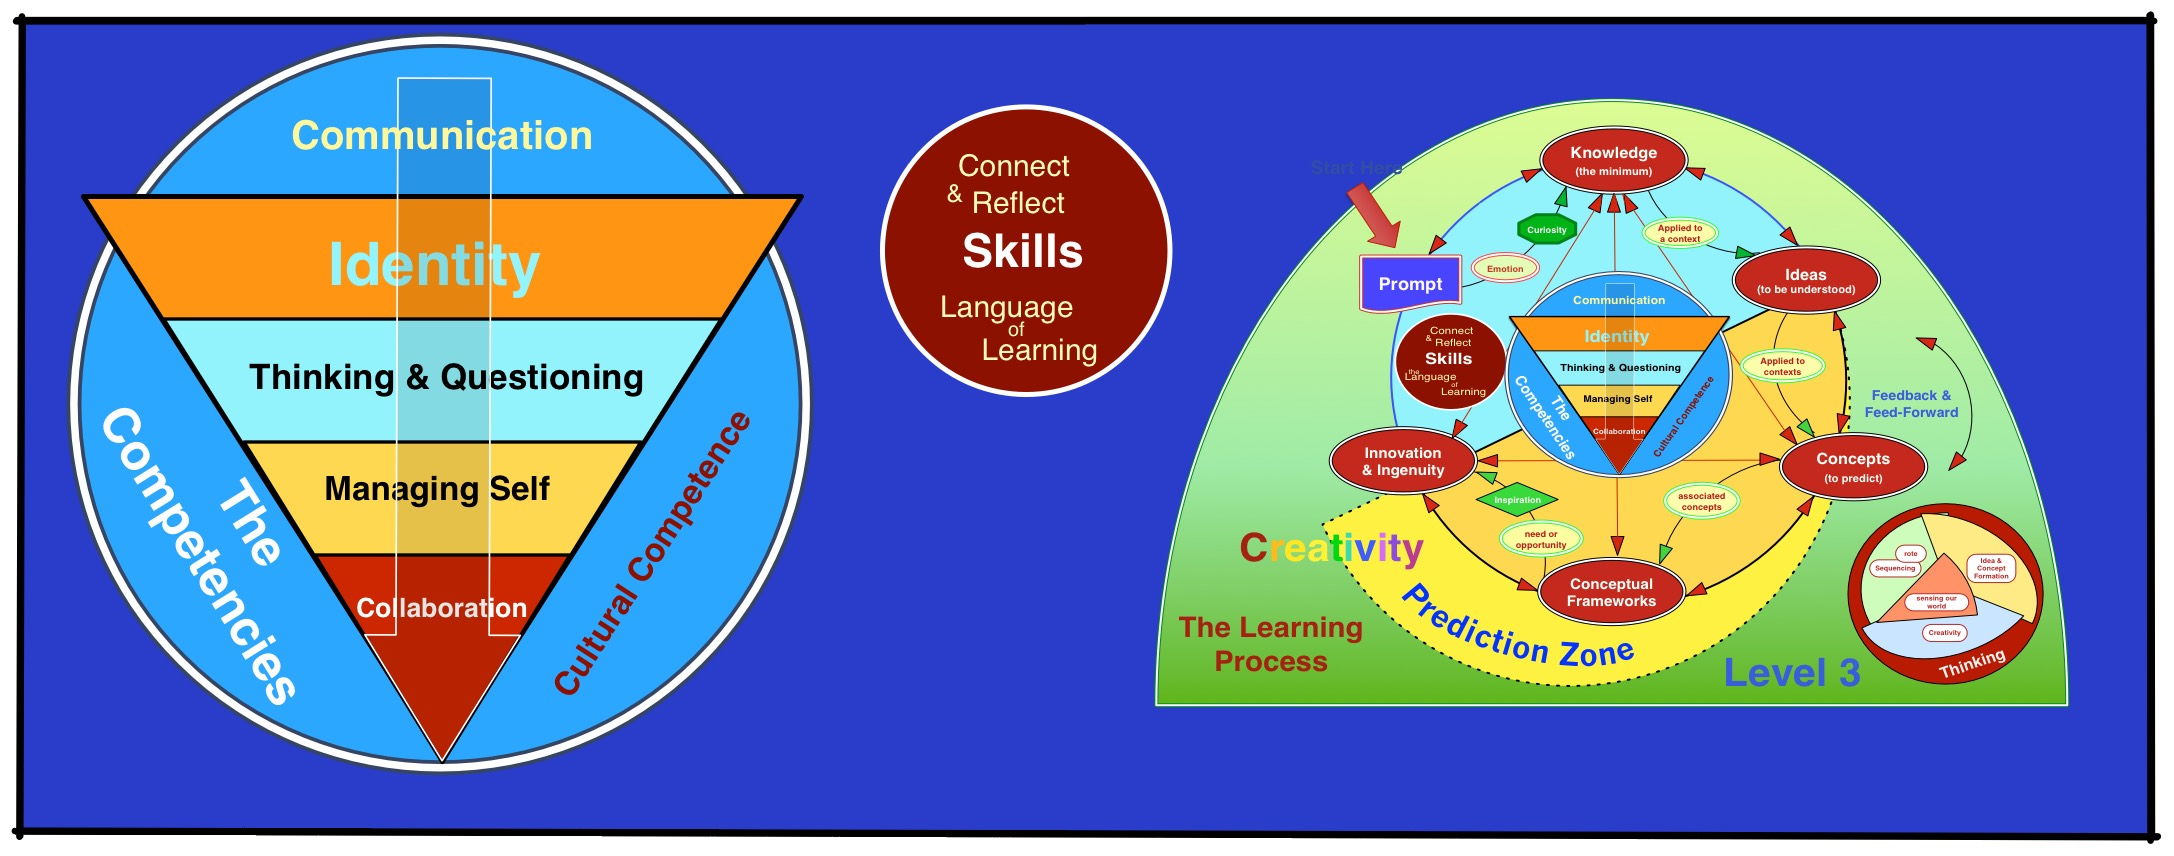 Competencies, Skills & the Learning Process